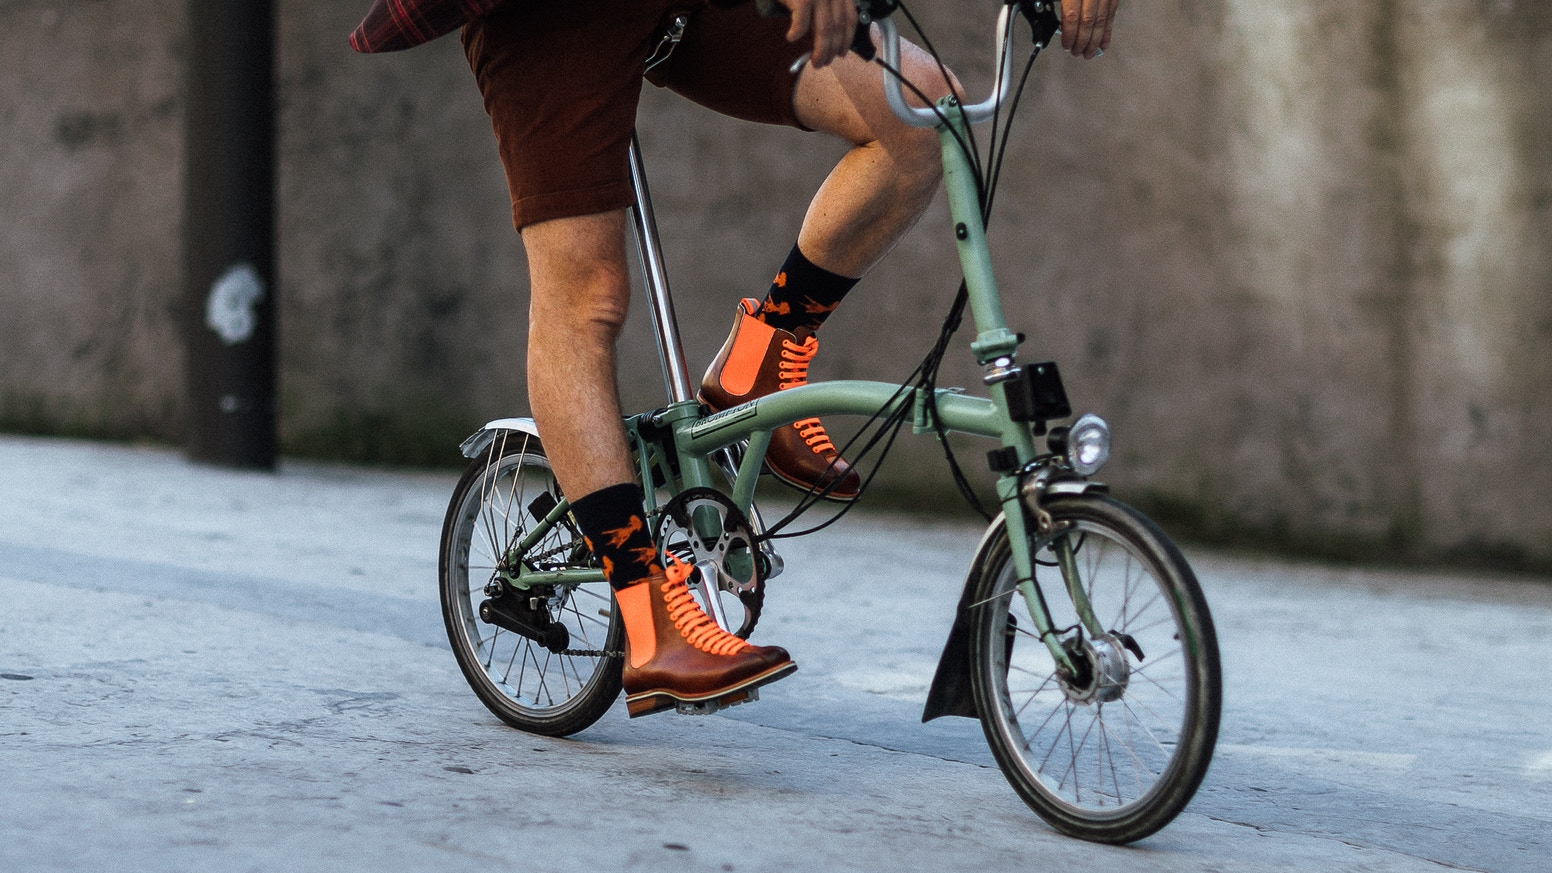 Shoes & Bags. Endurance, safety, sustainability and state-of-the-art design. Libertad Avenue has a conscious approach.